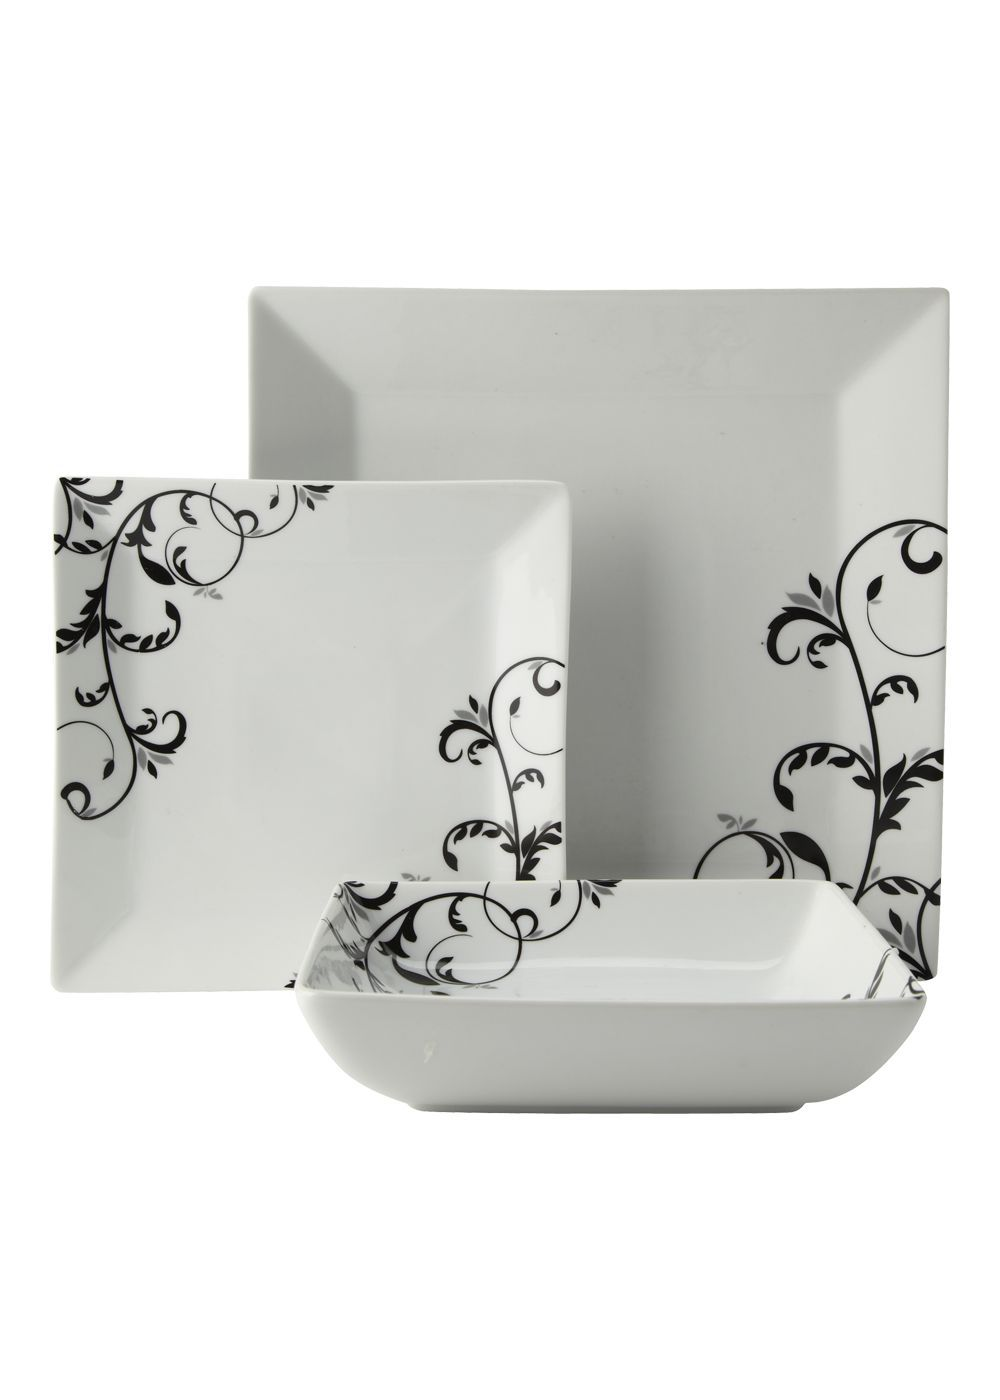 480d936c6624 Matalan - Swirl Pattern Square 12 Piece Box Set in white and black - This  is my ideal dinner set, I think square plates are so stylish <3  #MatalanMostWanted